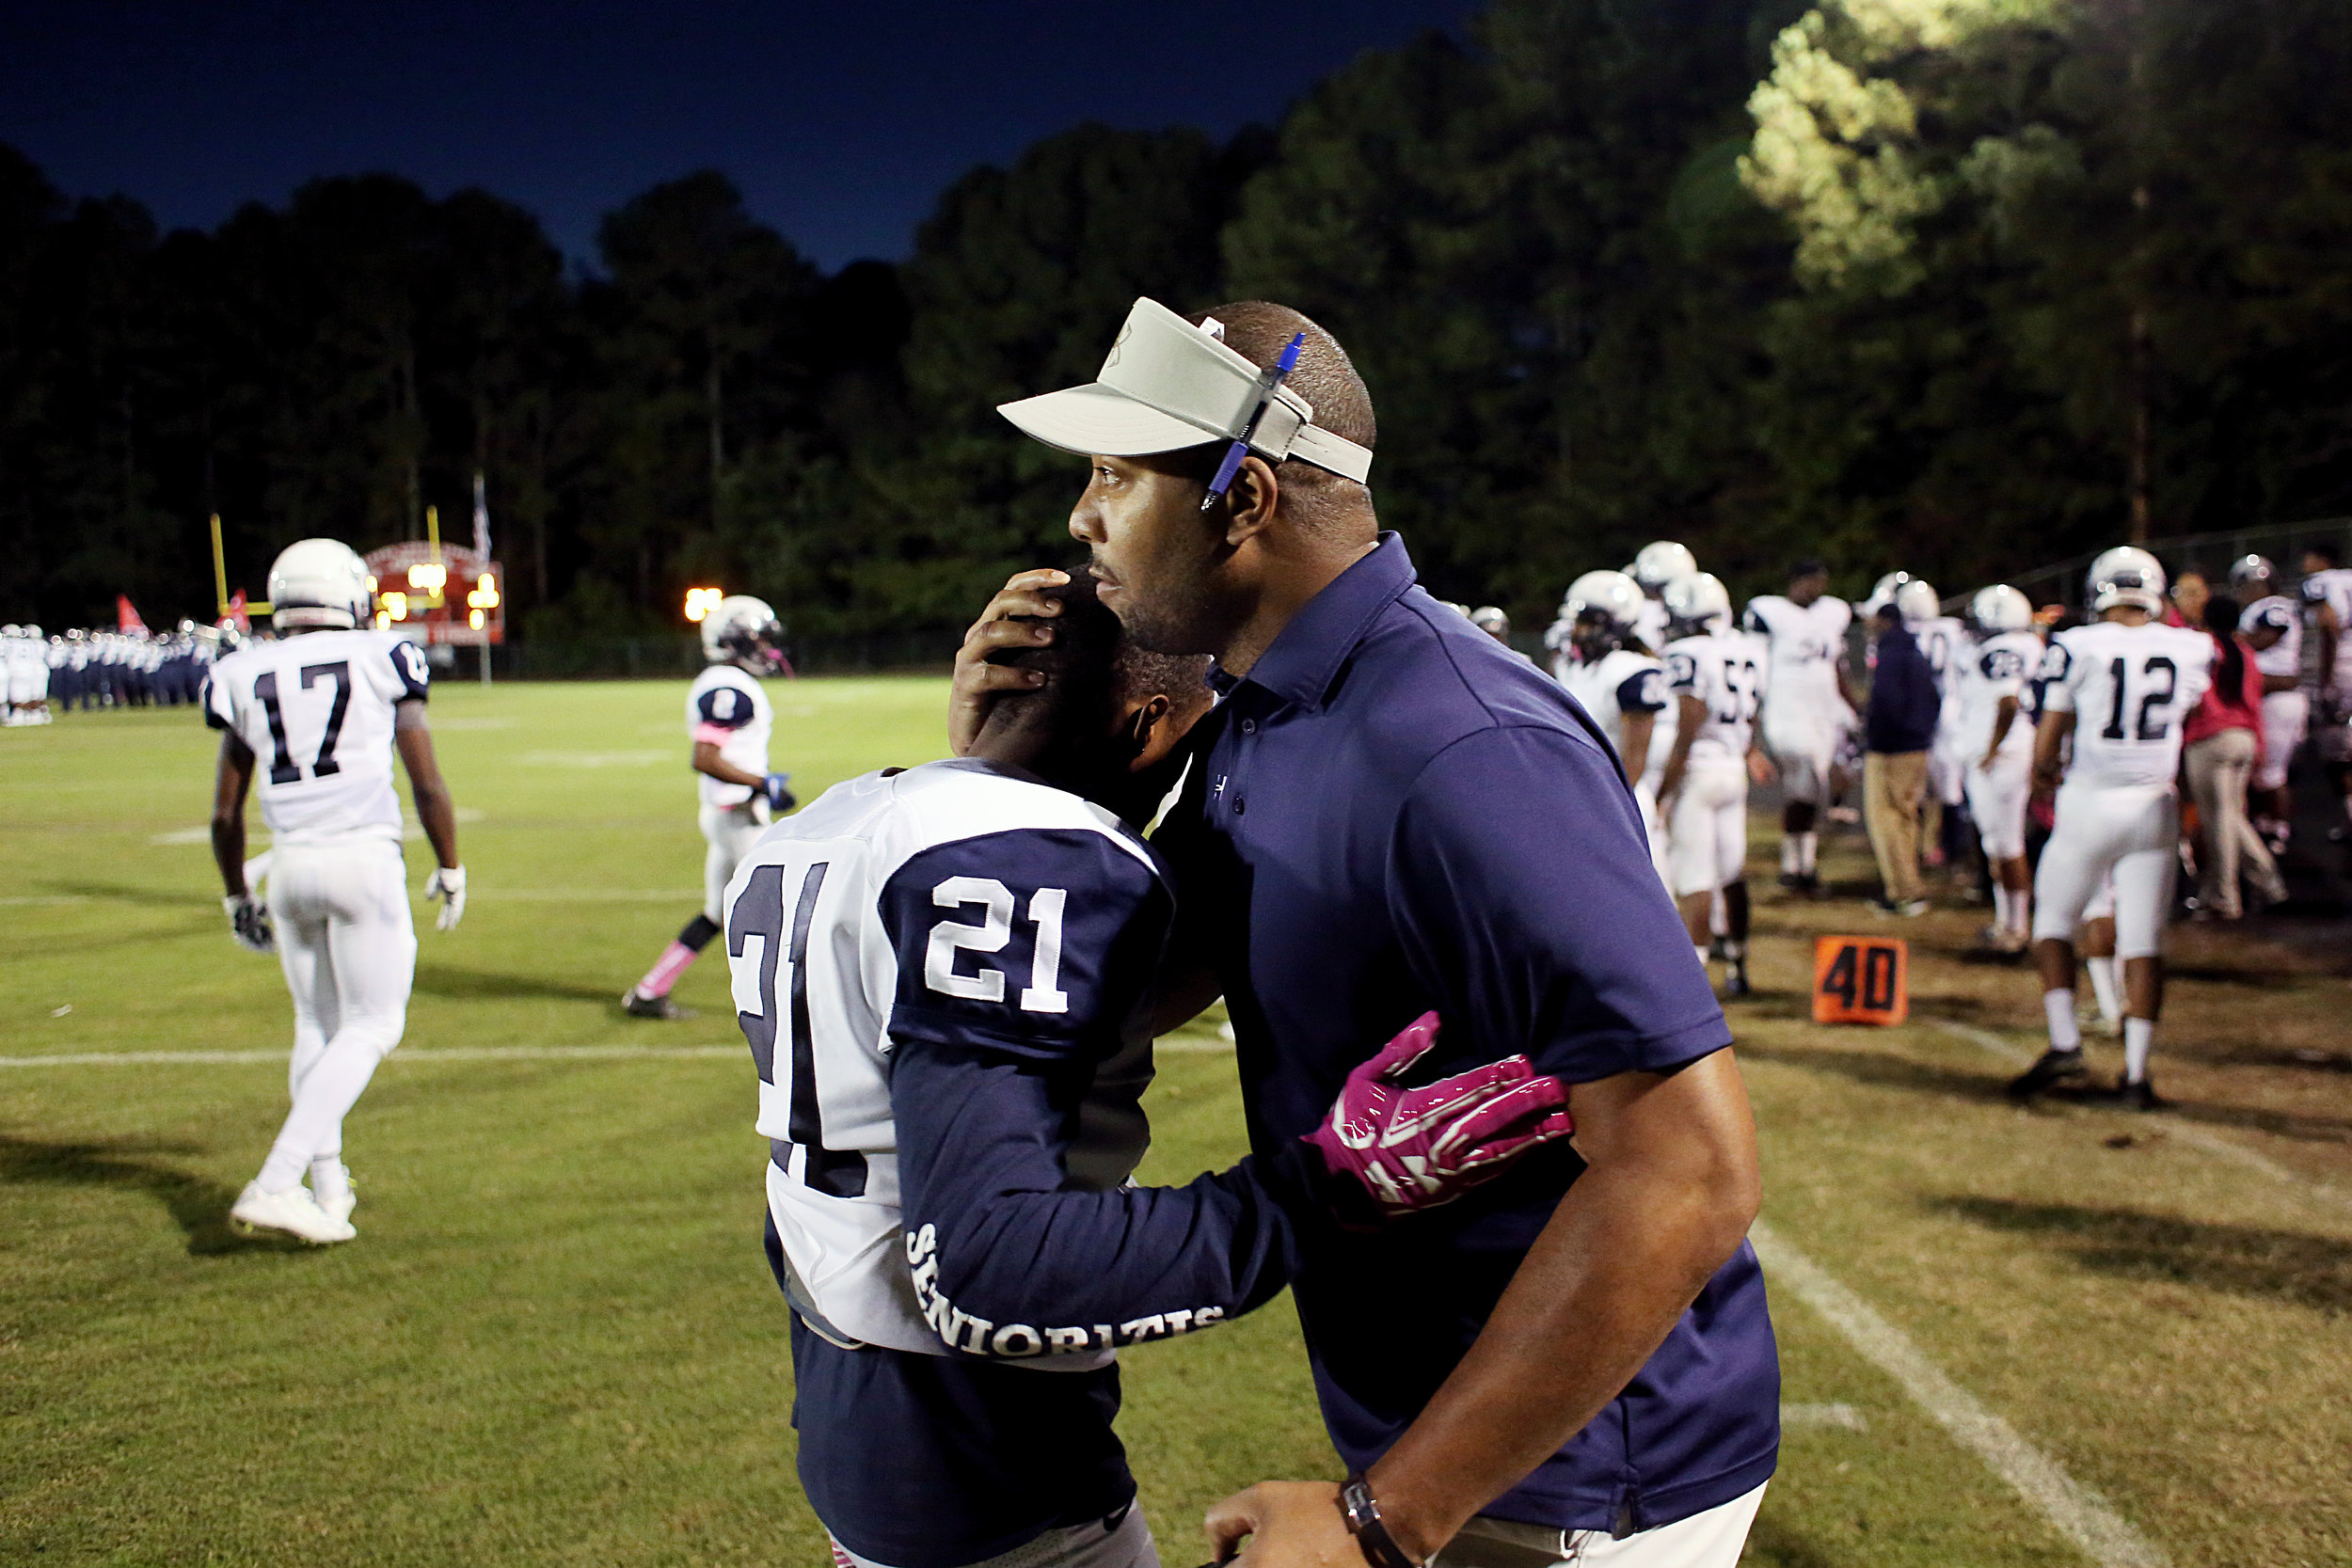 Hillside's Zakee Simmons is embraced by a coach prior to a game against Charles E. Jordan High School on Friday, October 28, 2016, at Jordan High School. Hillside won, 42-14.